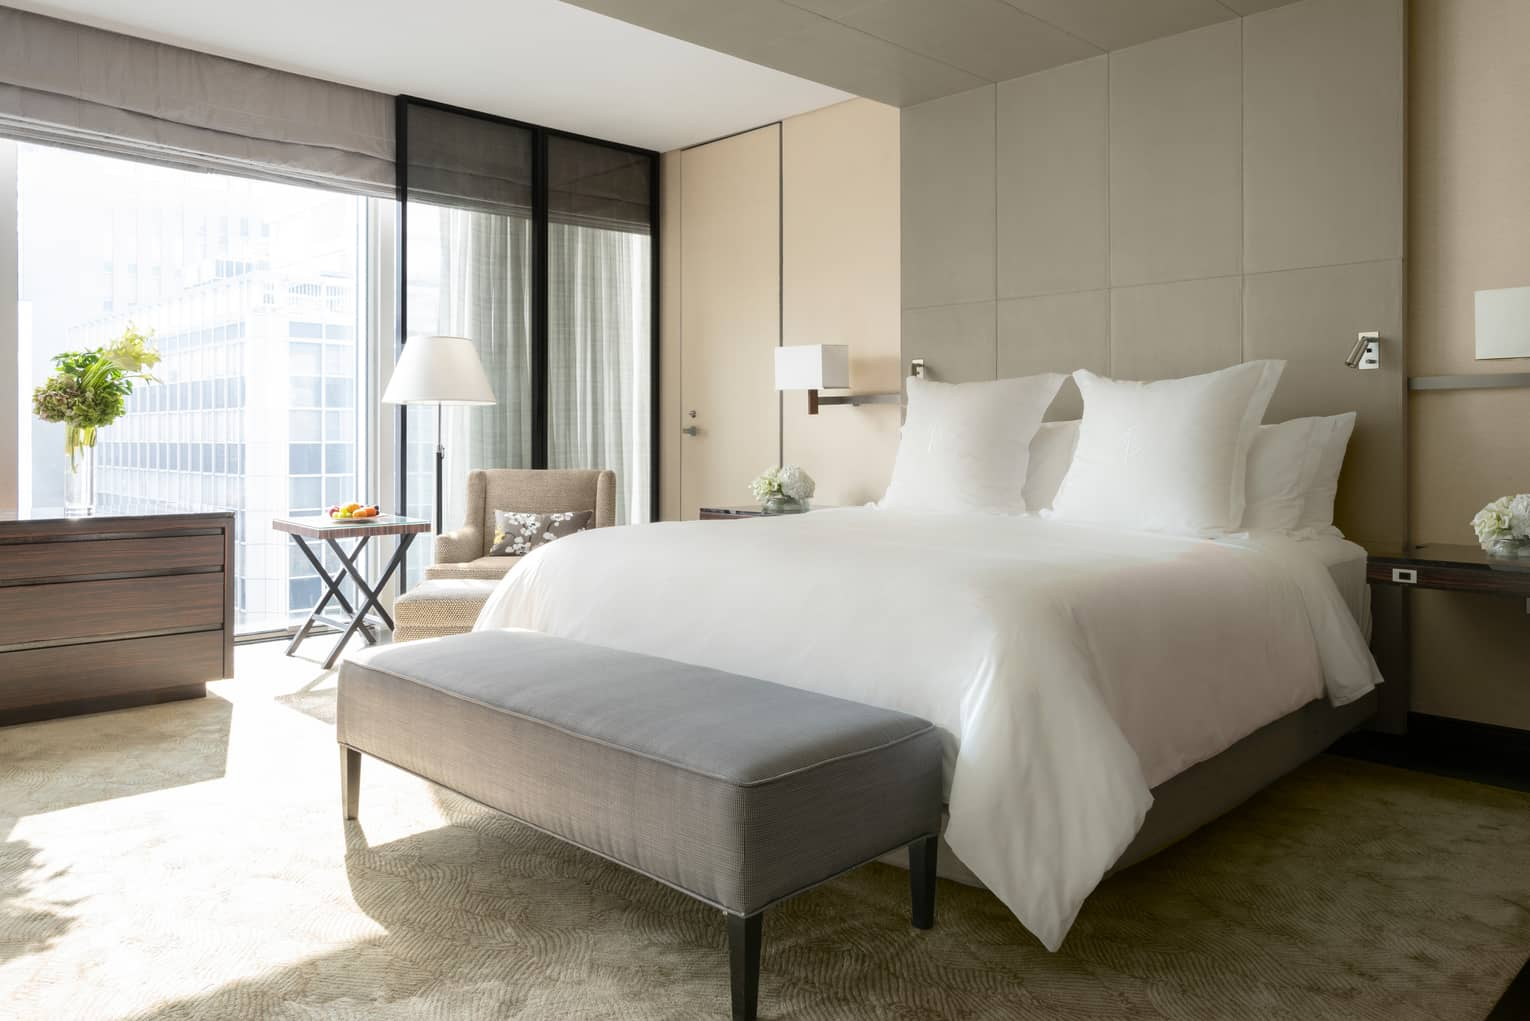 Sunny Deluxe One Bedroom Suite hotel bed with white linens, grey bench at foot